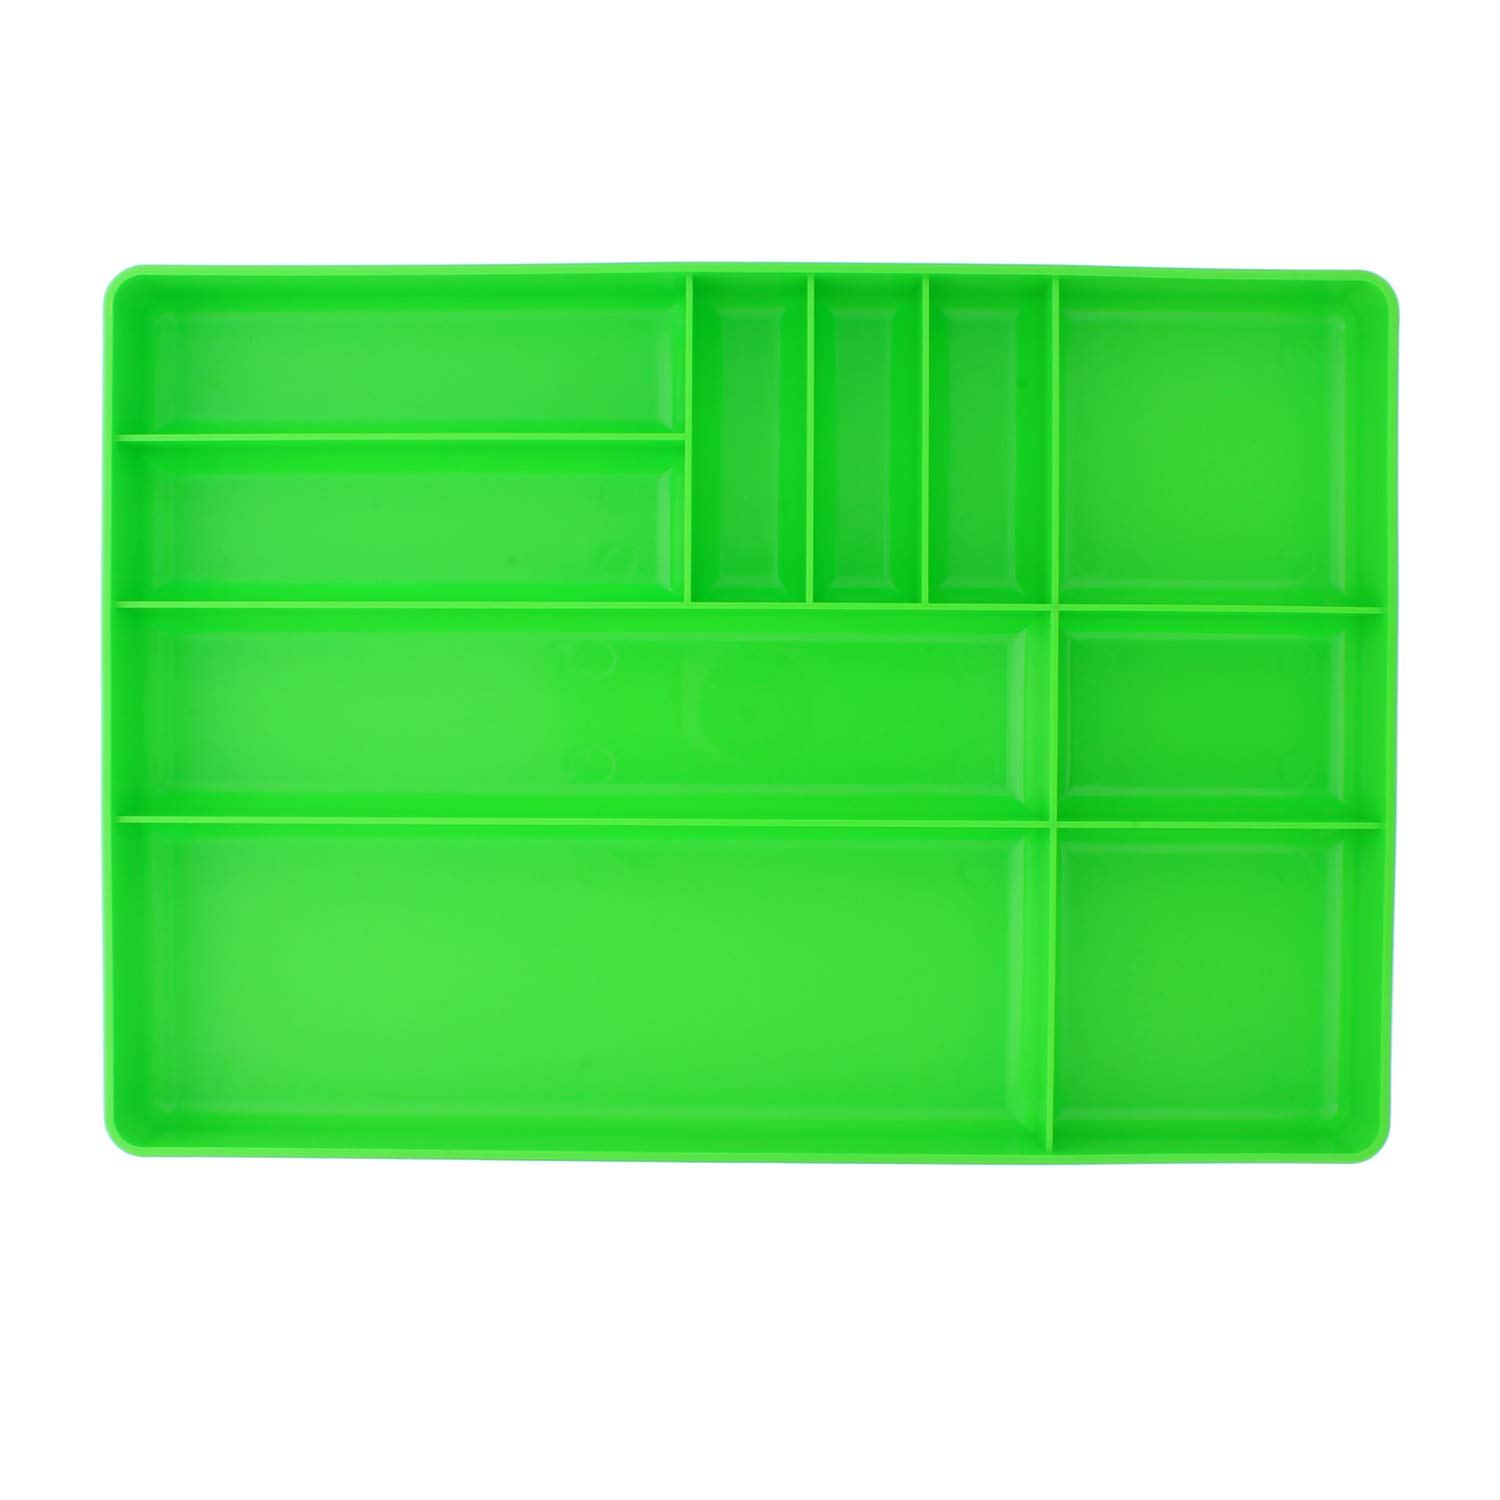 ABN | Toolbox Drawer Organizer Tool Organizer Tool Tray - Tool Drawer Organizer Sorting Tray, 16x11x1.5'' Inch in Green by ABN (Image #1)